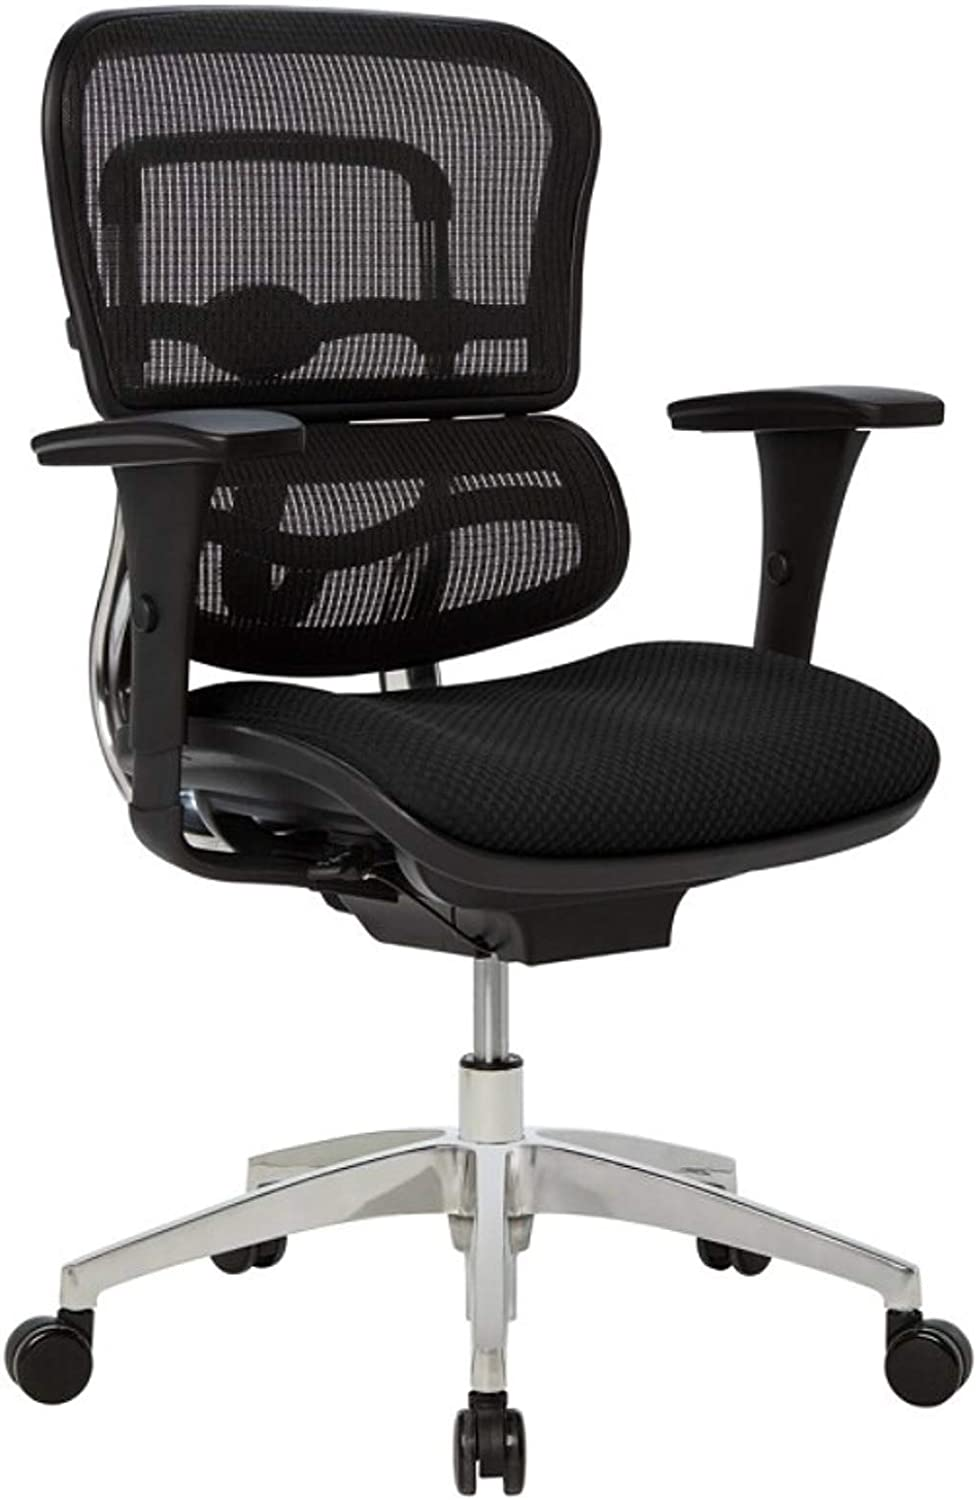 WorkPro 12000 Series Ergonomic Mesh/Fabric Mid-Back Manager's Chair, Black/Chrome